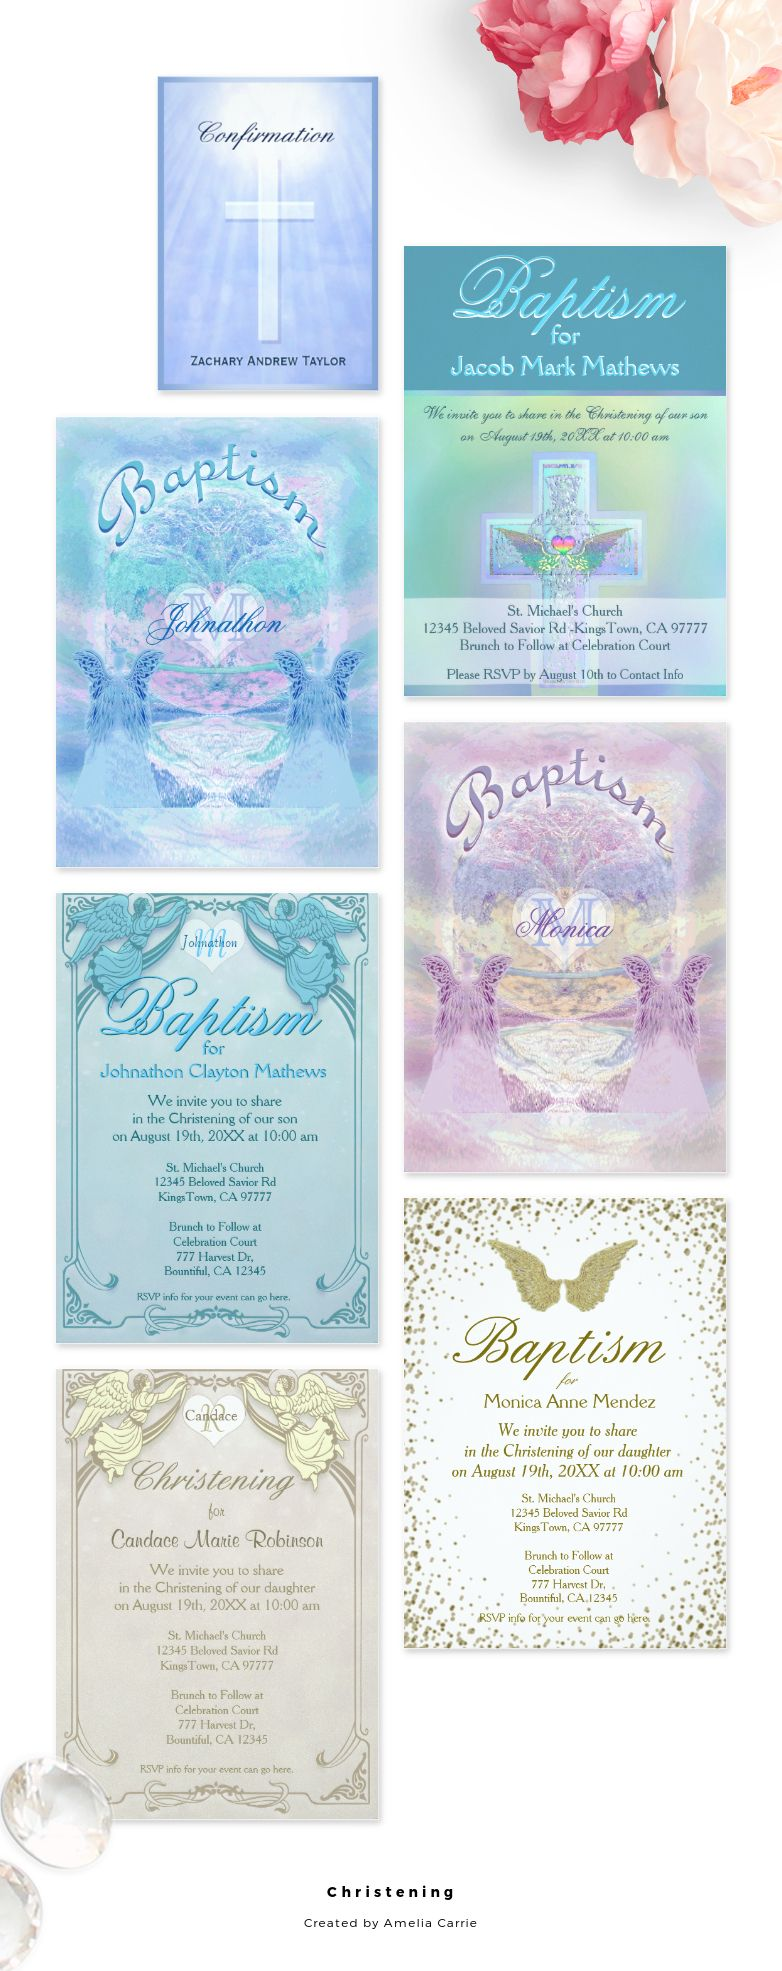 A collection of Christening / Baptism / Confirmation invitations that you can customize.